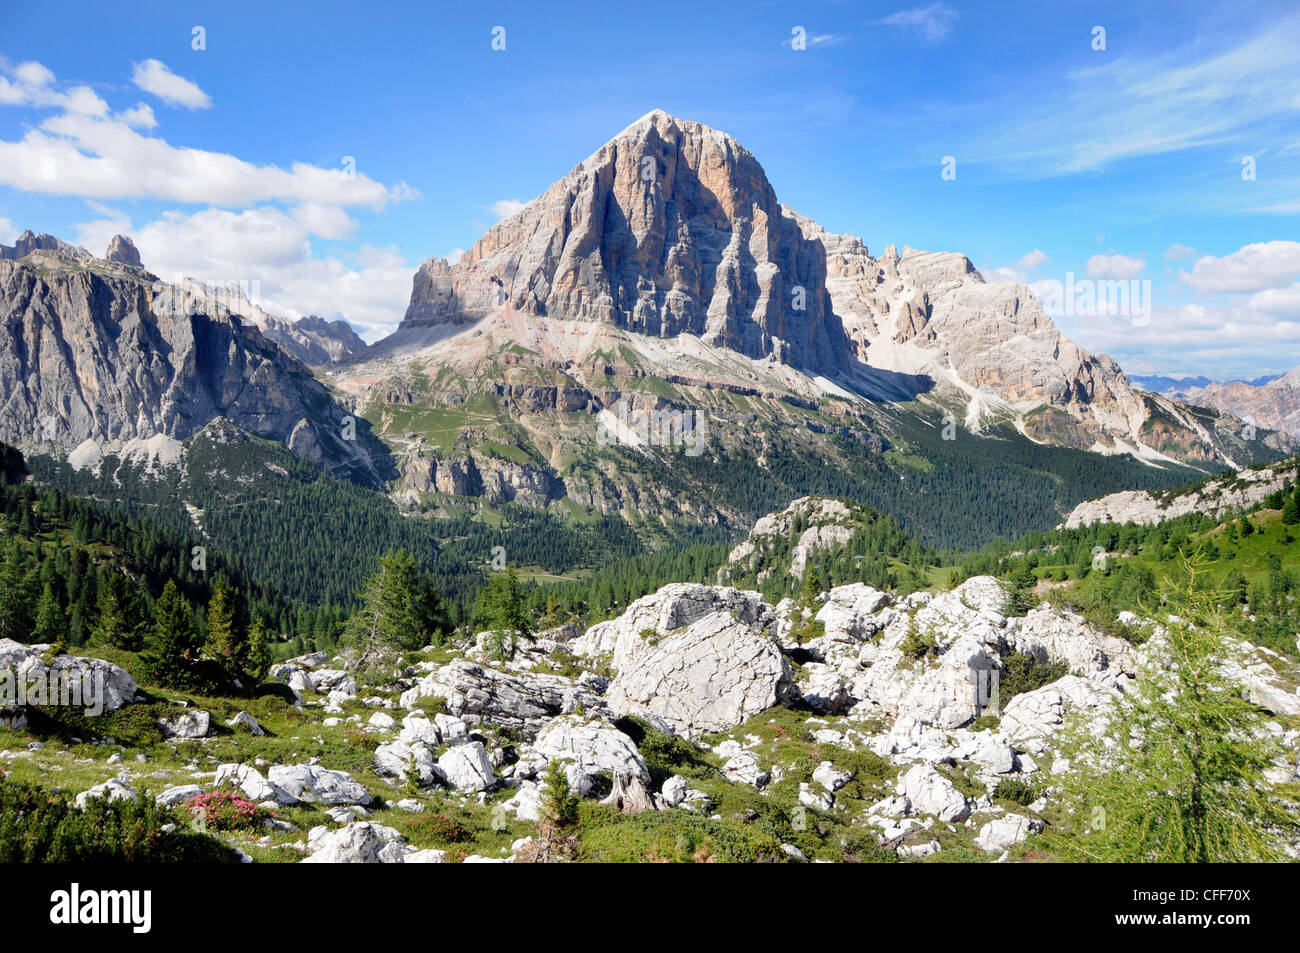 Mountain scenery in the sunligth, Dolomiti ampezzane, Alto Adige, South Tyrol, Italy, Europe - Stock Image